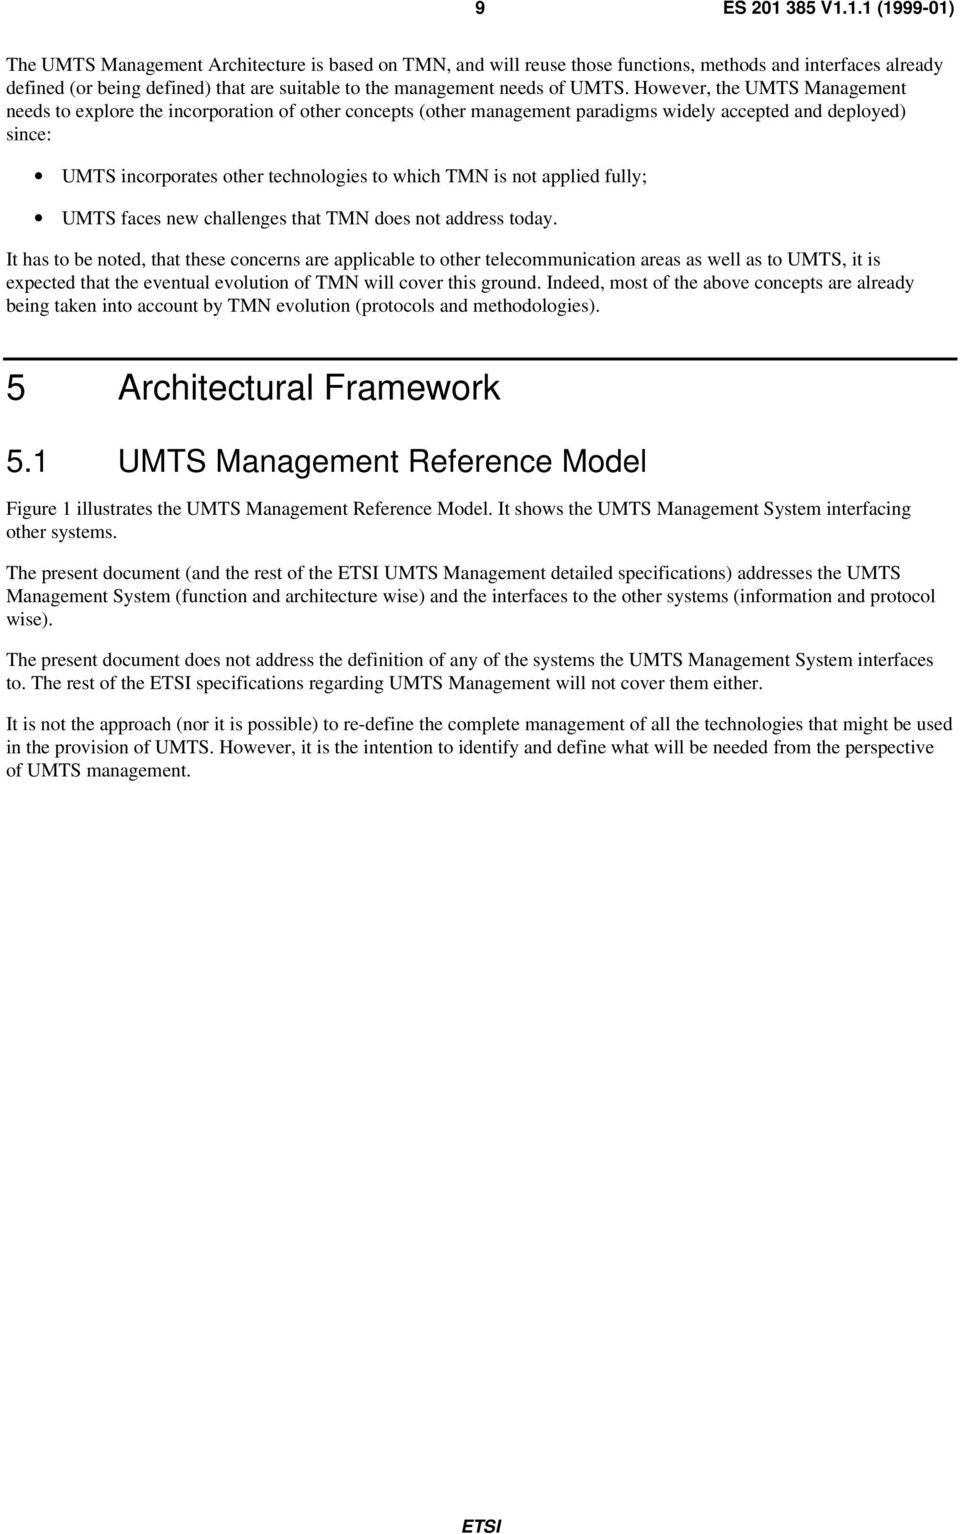 not applied fully; UMTS faces new challenges that TMN does not address today.